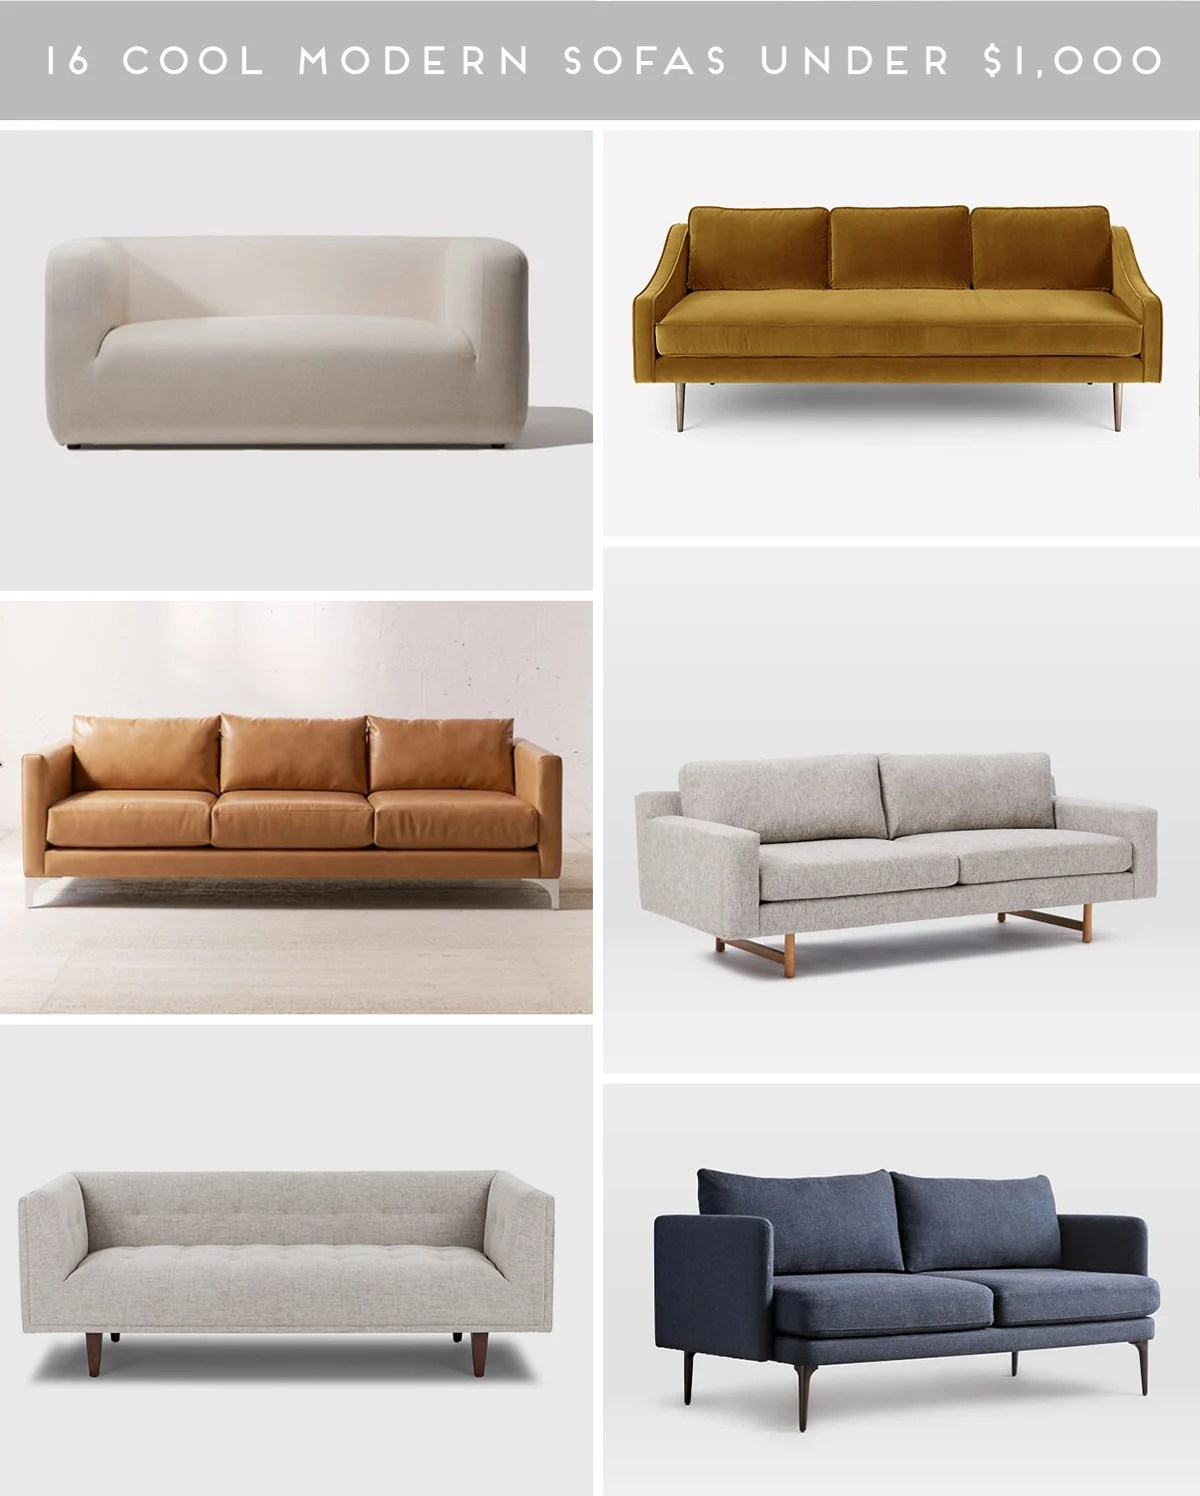 Couch Potato 16 Stylish Modern Sofas Under 1 000 Paper And Stitch